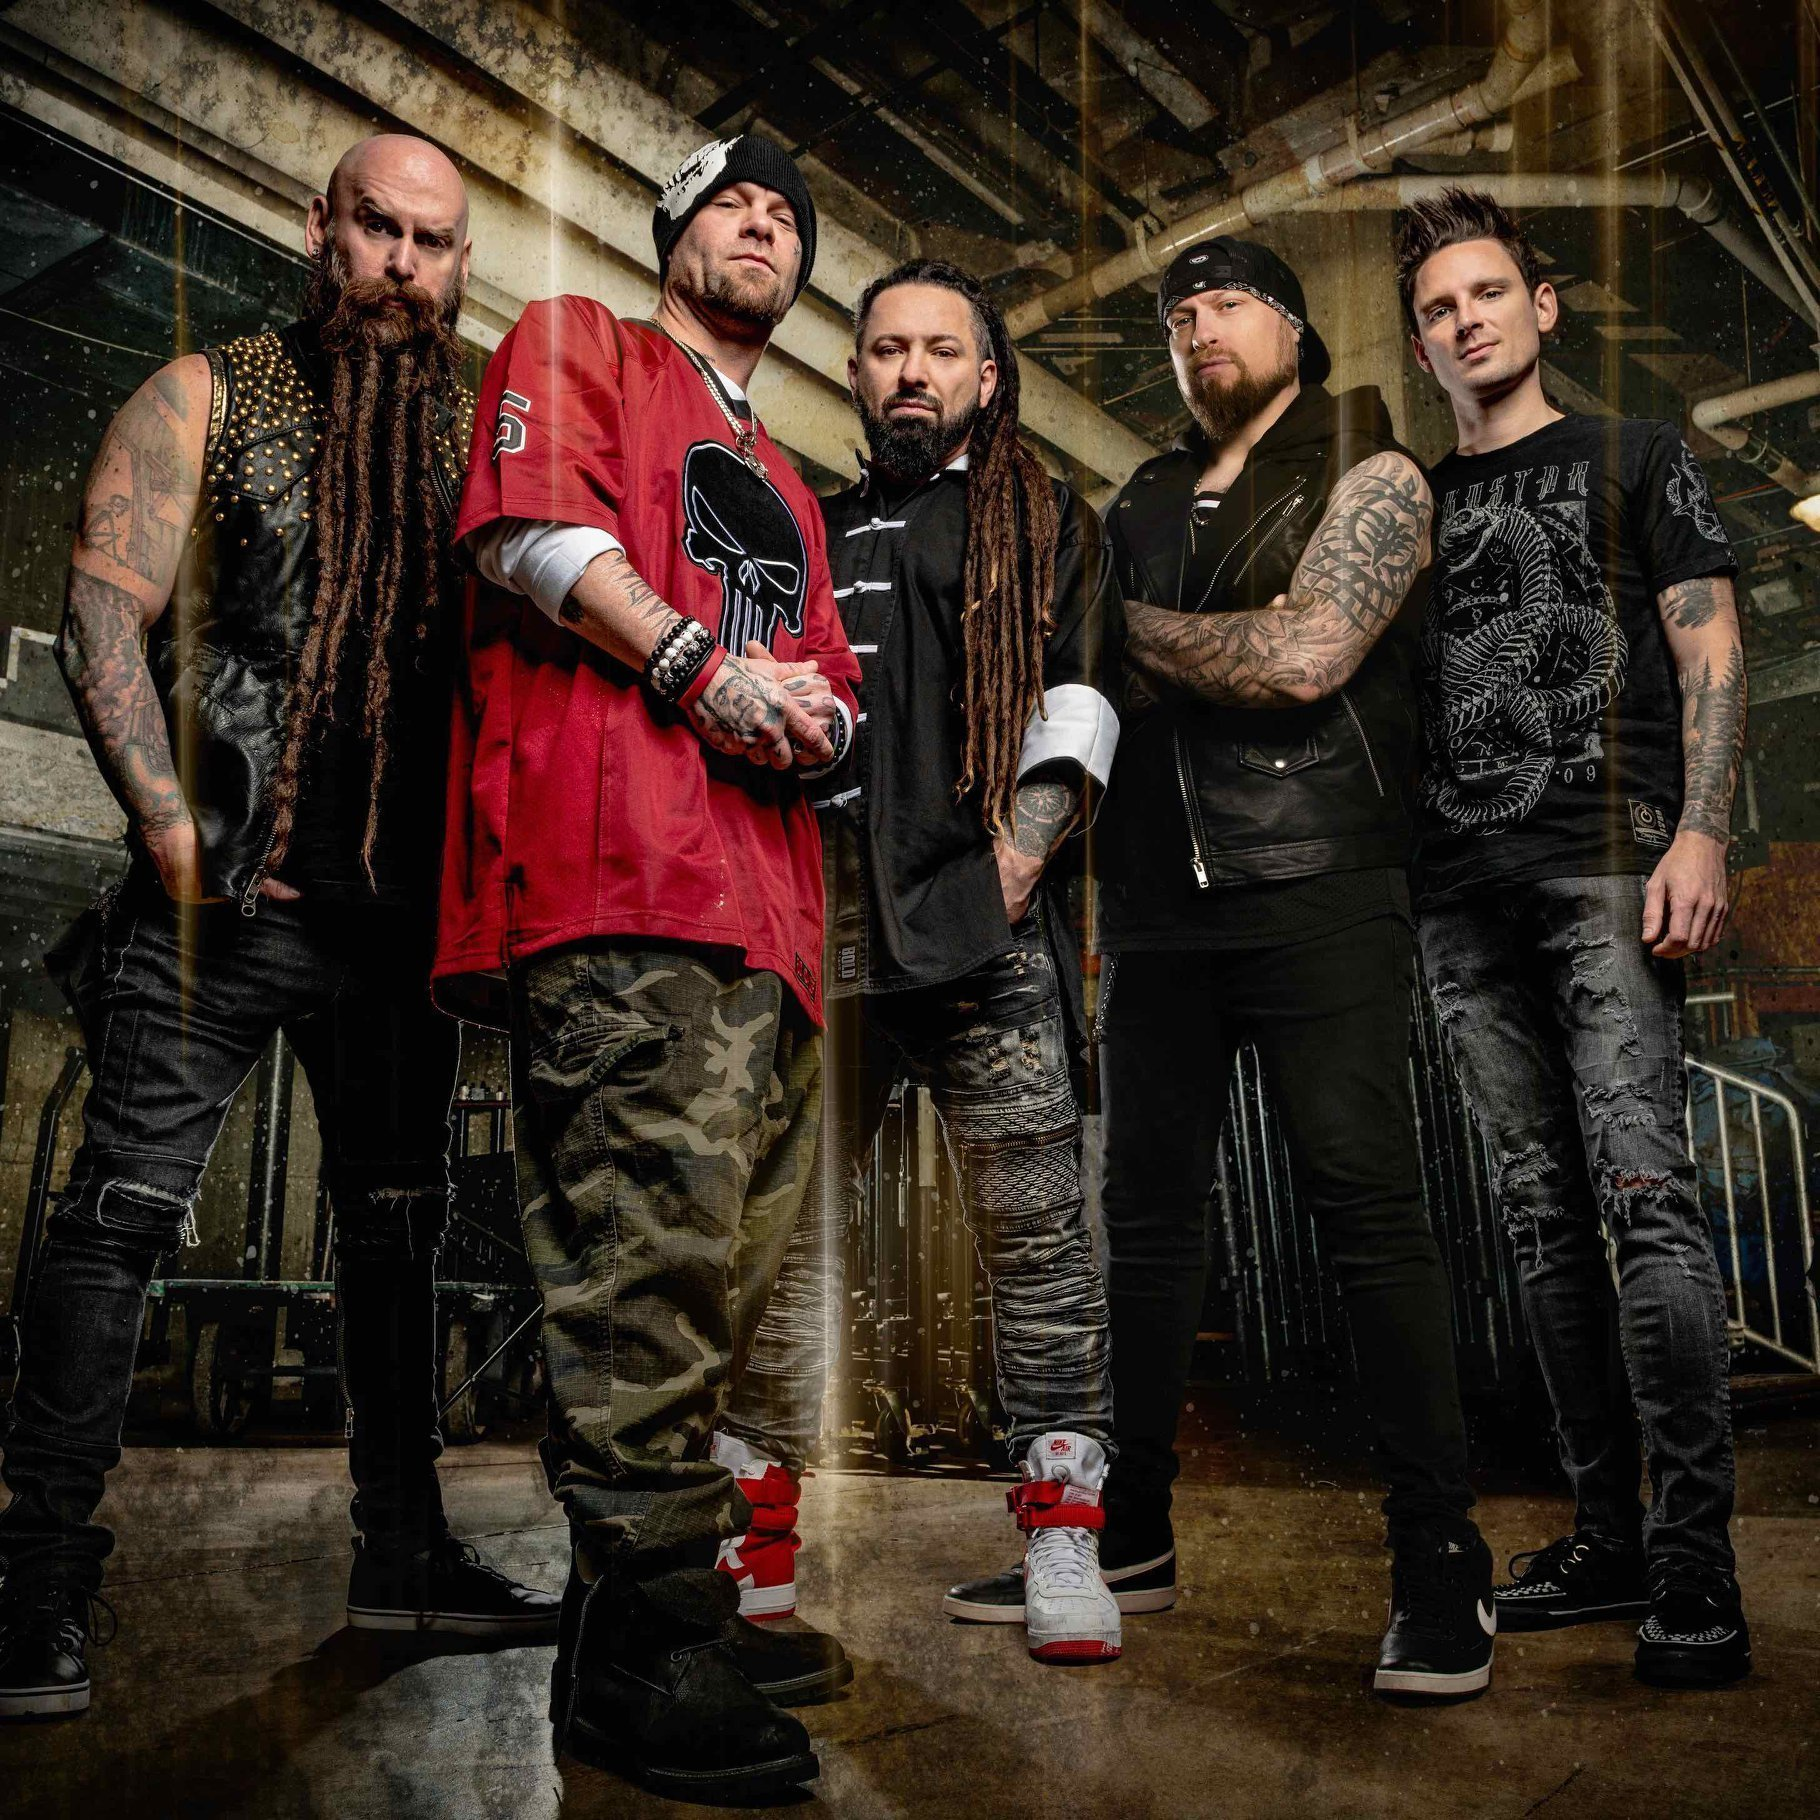 5FDP 2020 band photo